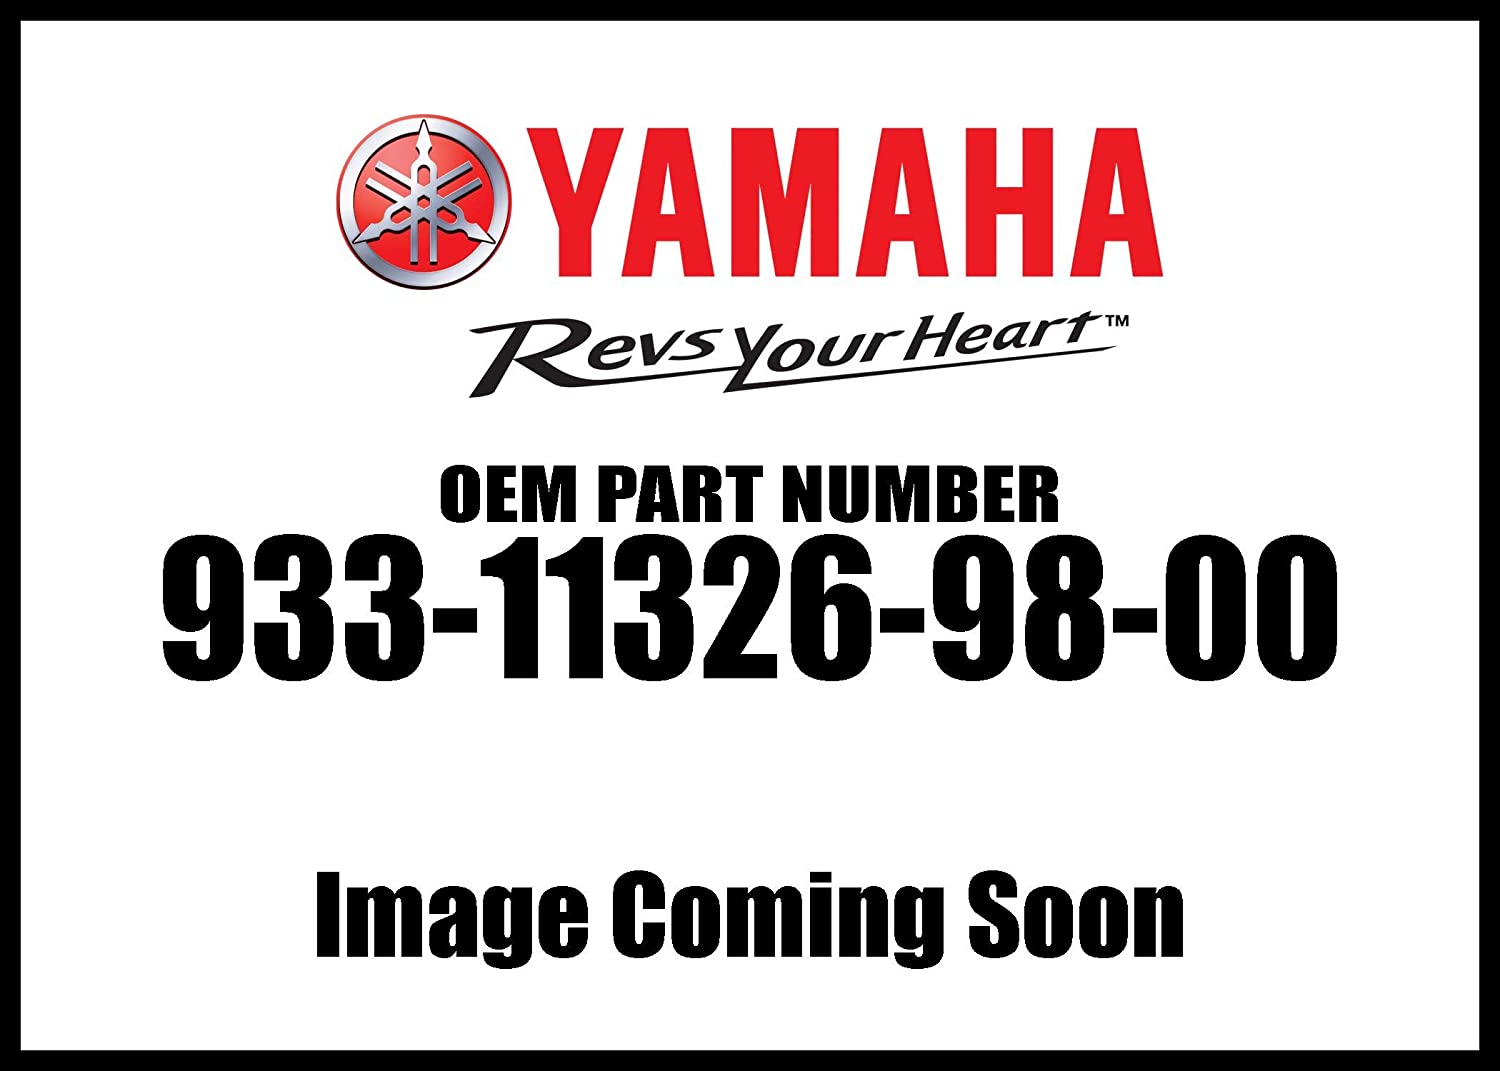 Yamaha 93311-32698-00 Bearing; 933113269800 Made by Yamaha